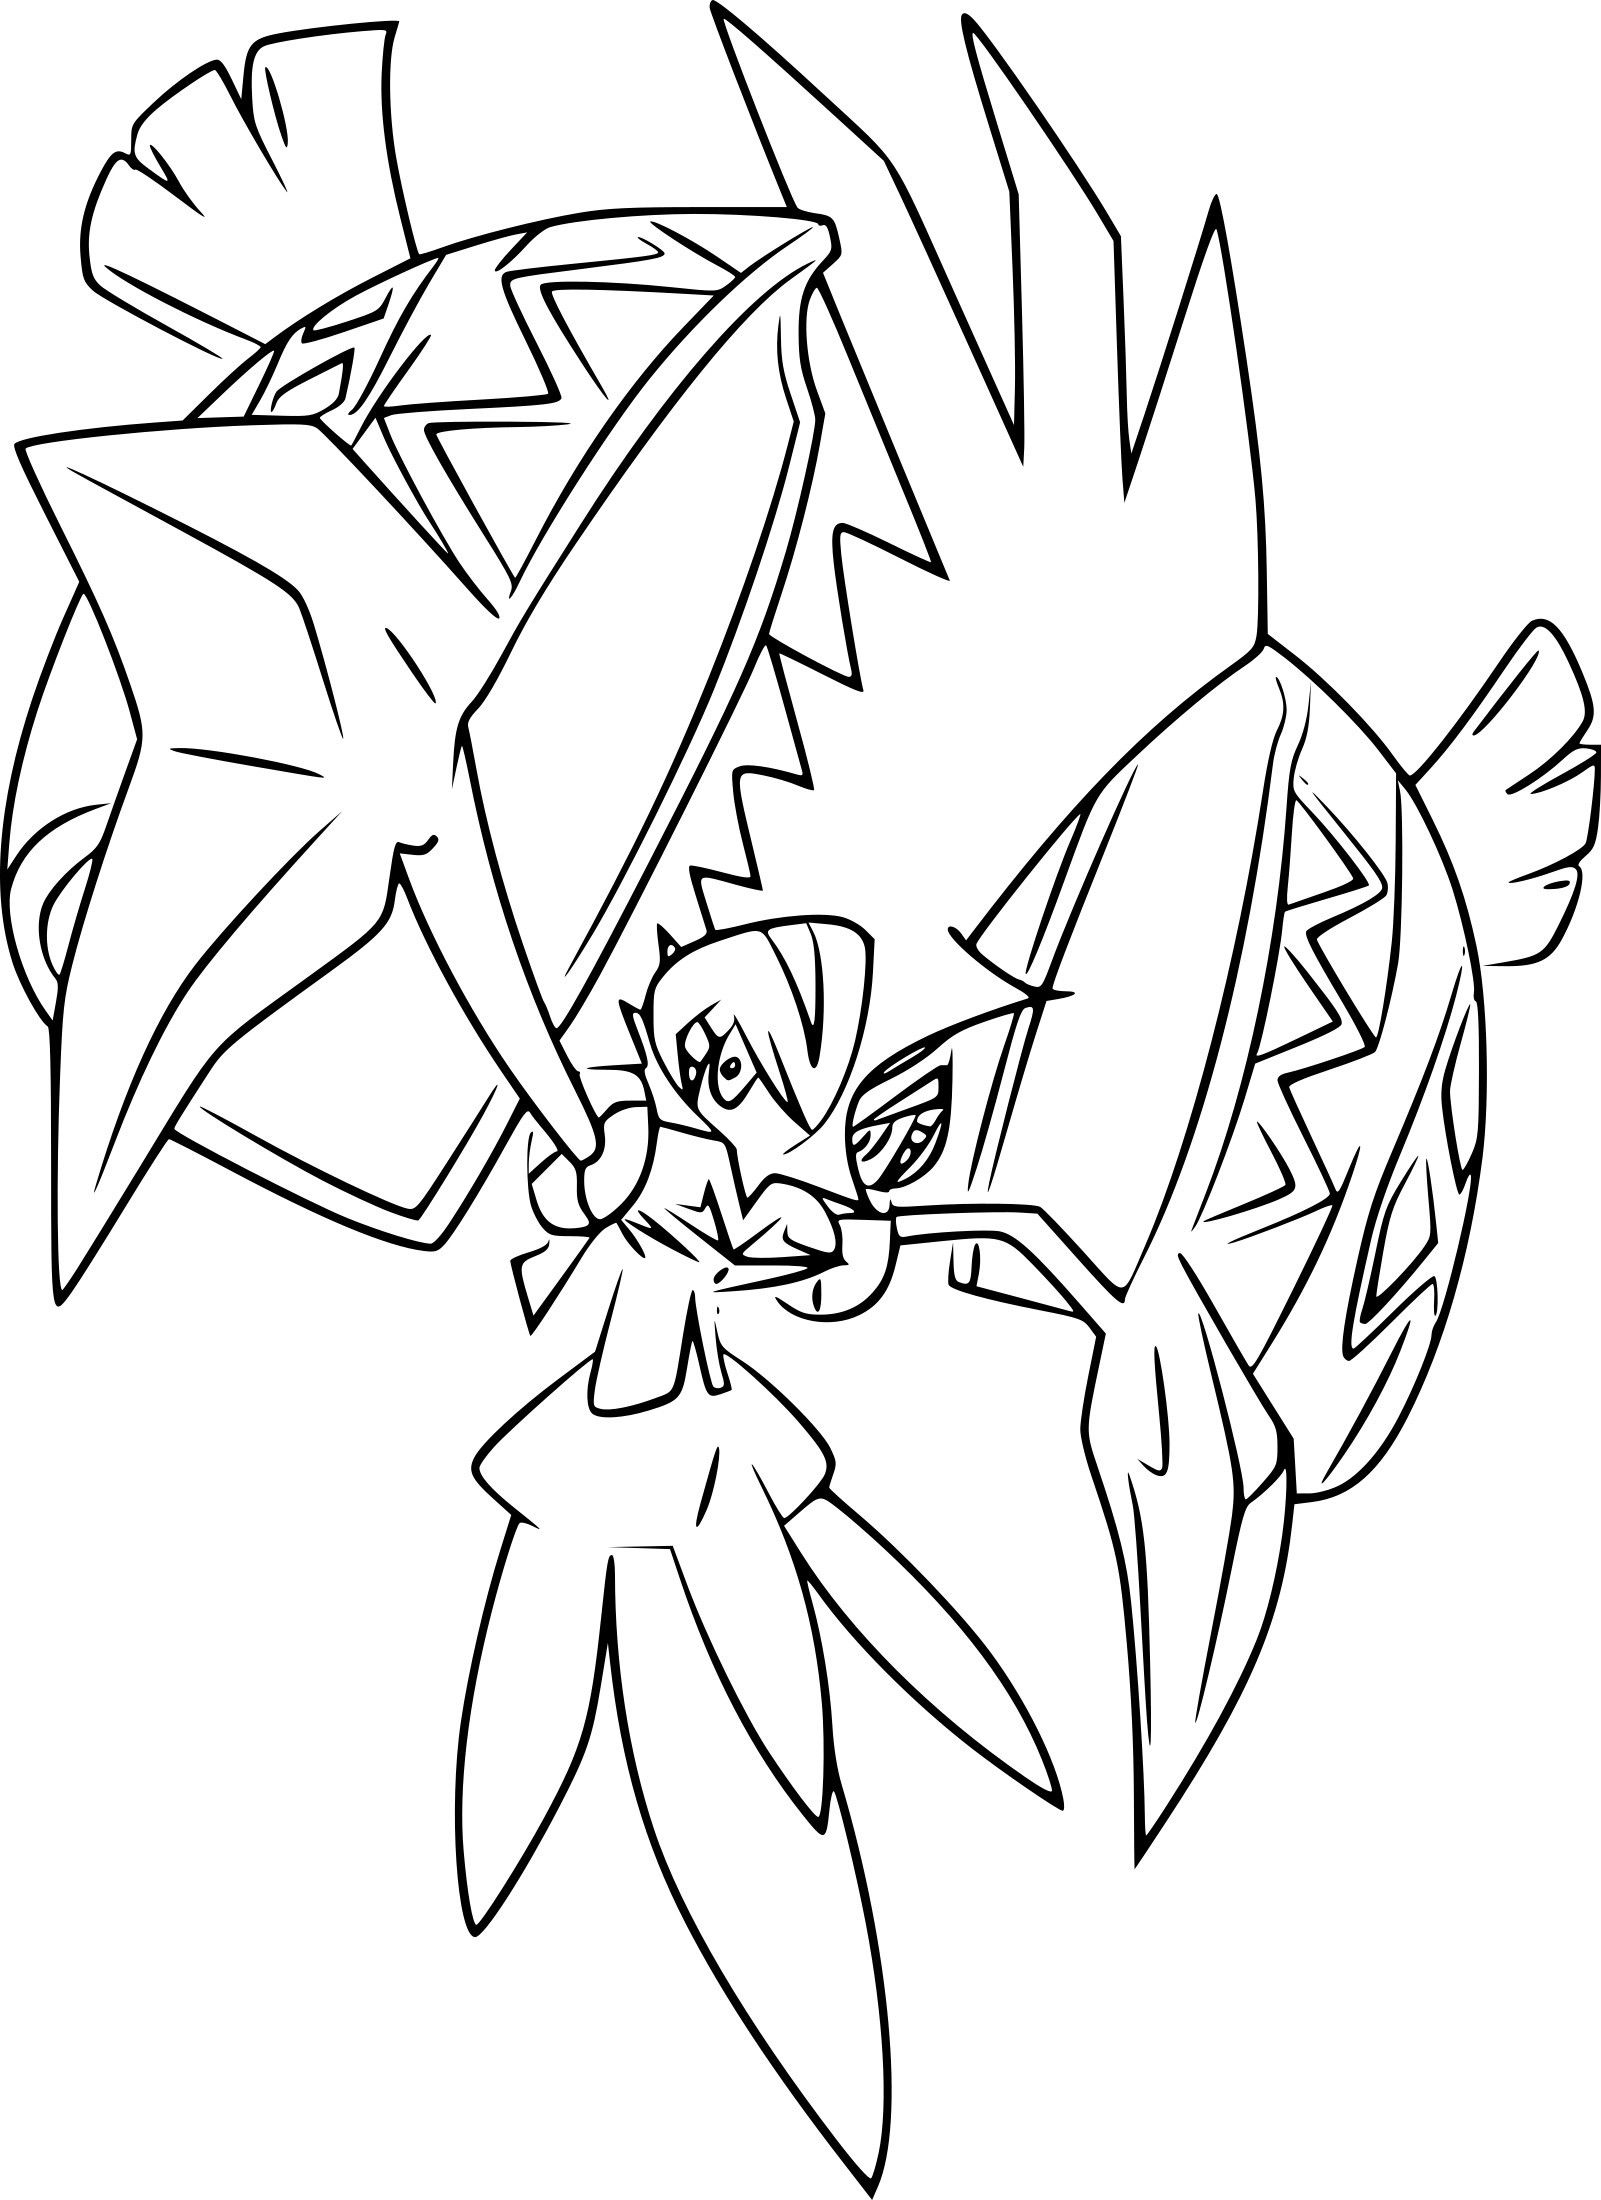 Pokemon Coloring Pages Tapu Koko From the thousand